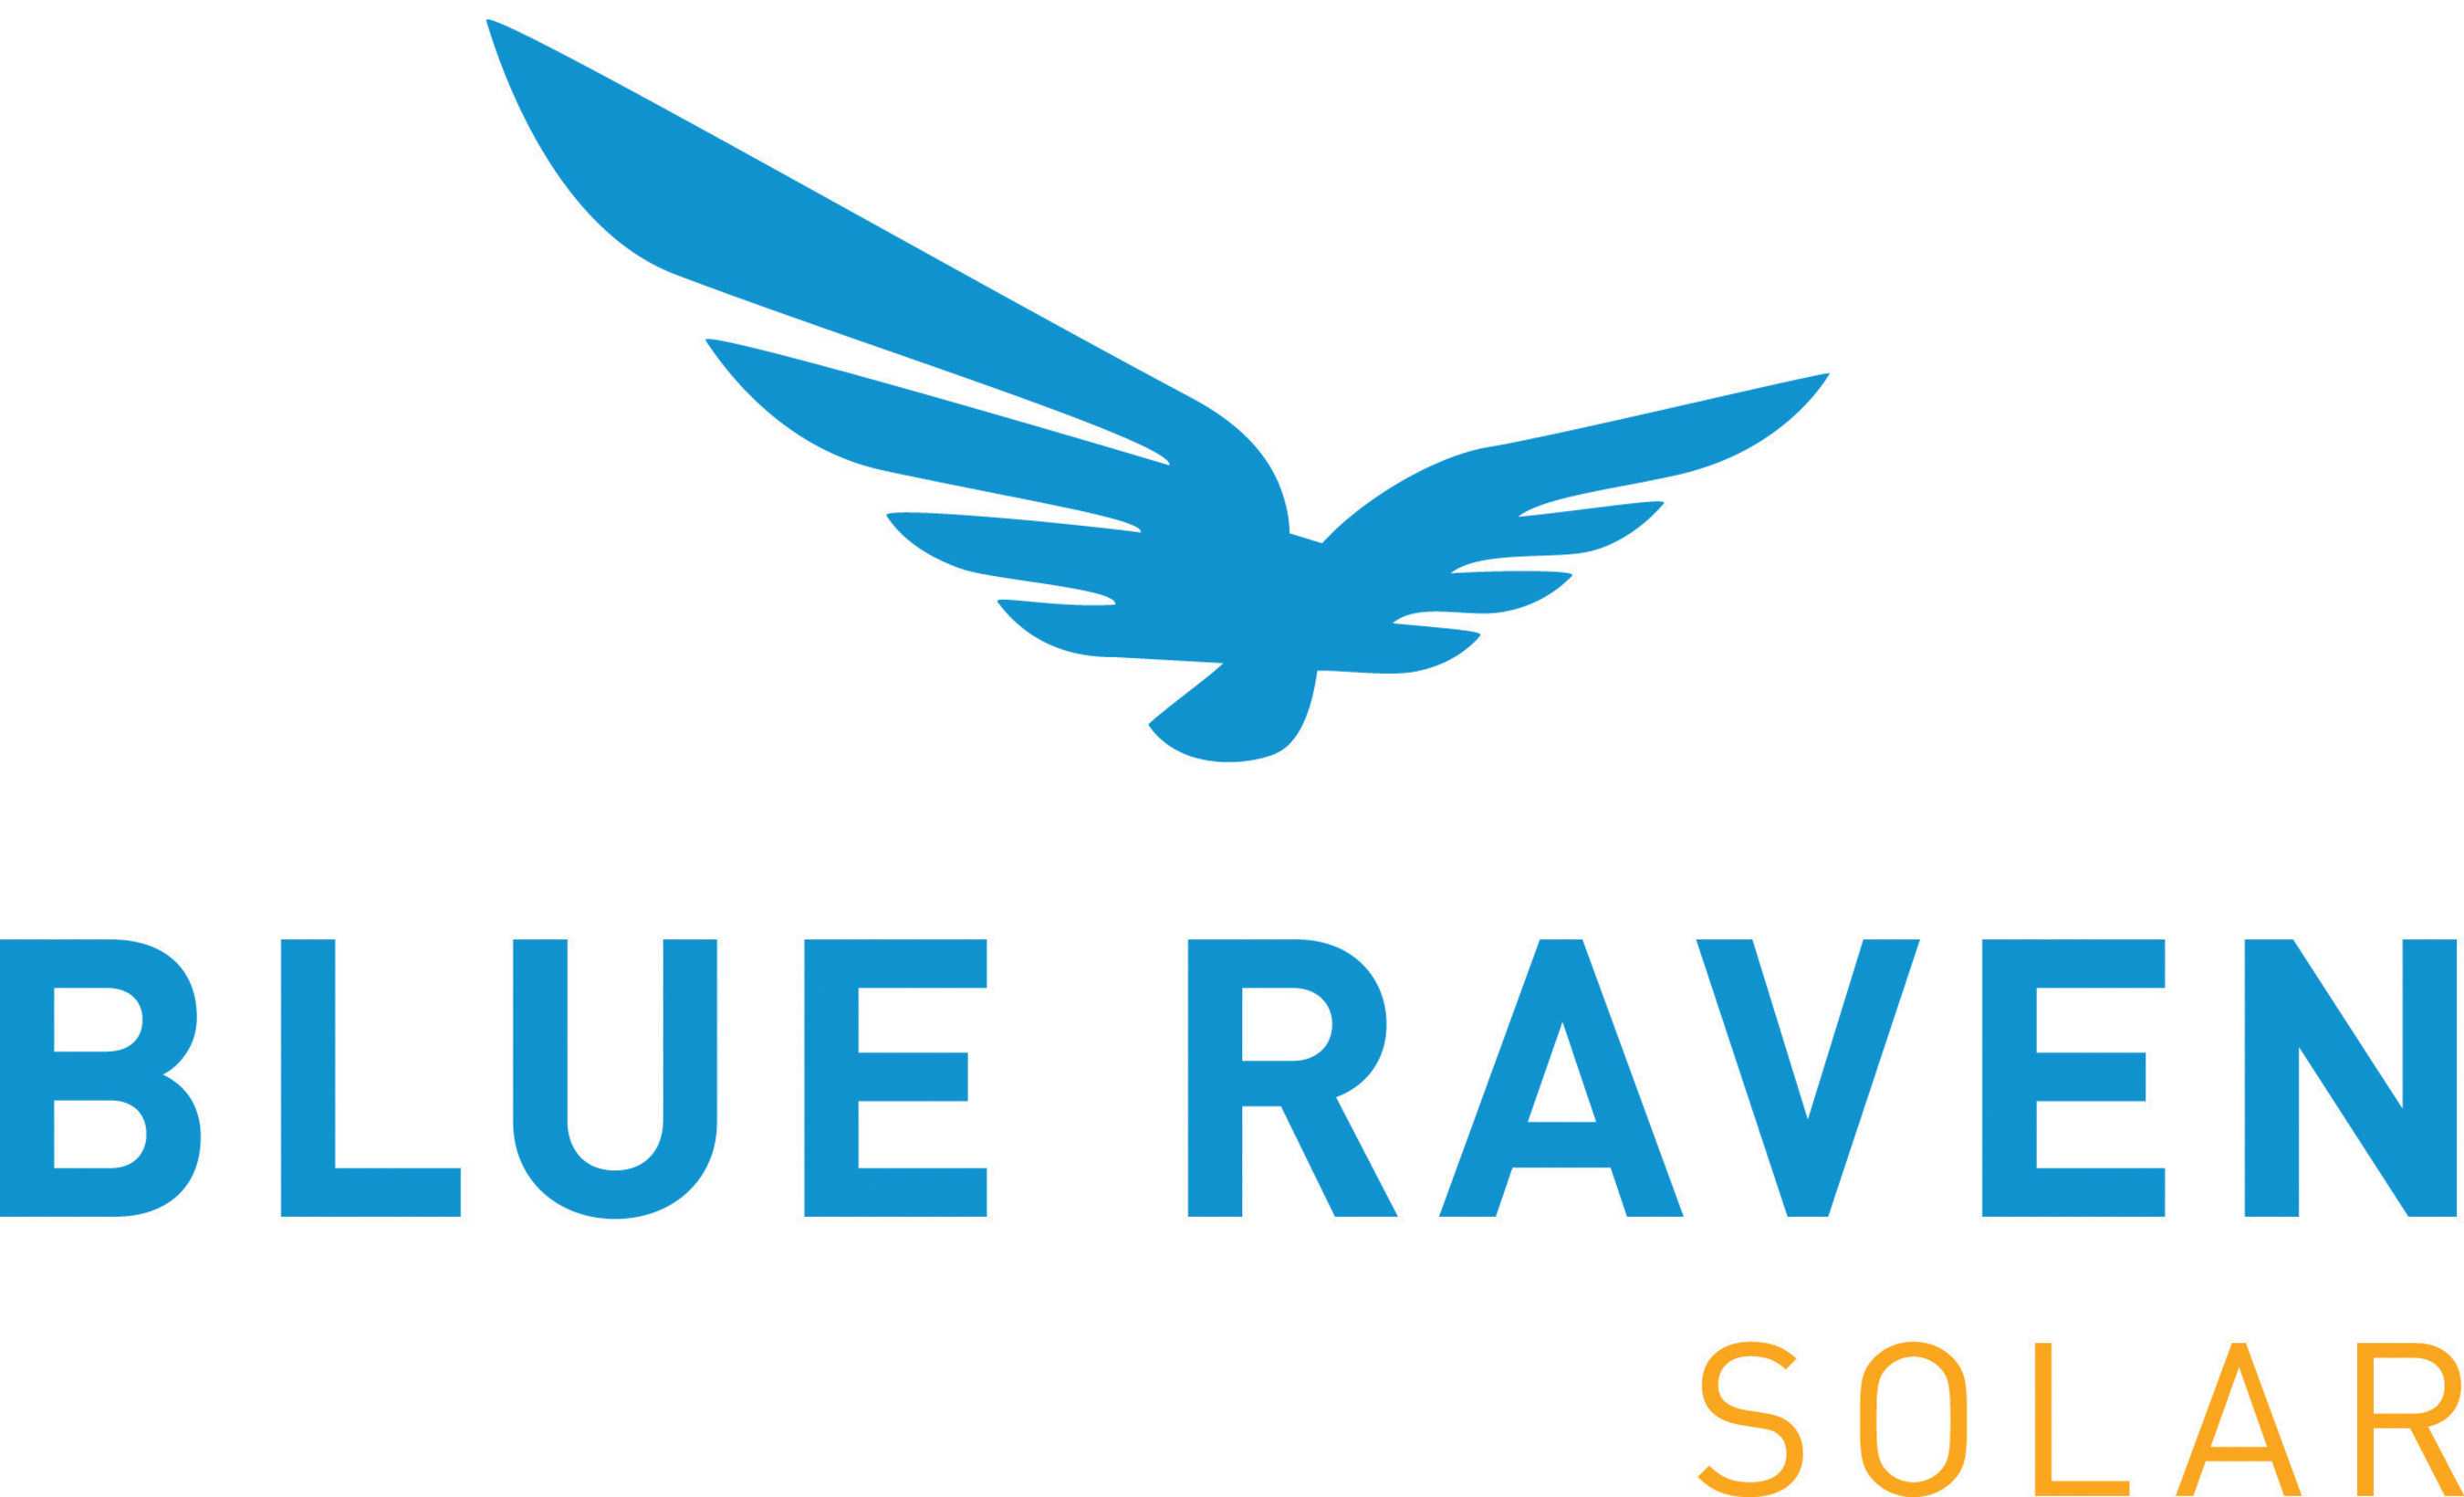 Blue Raven Solar Announces Investment from Peterson Partners